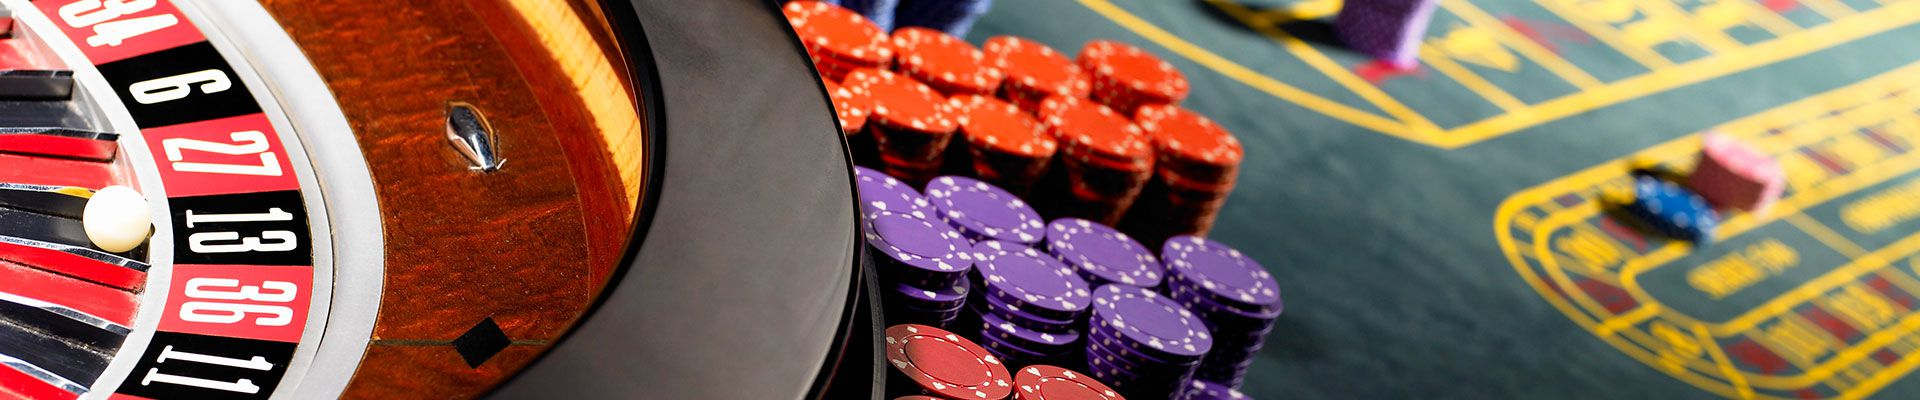 Casinos, IP Textilien GmbH